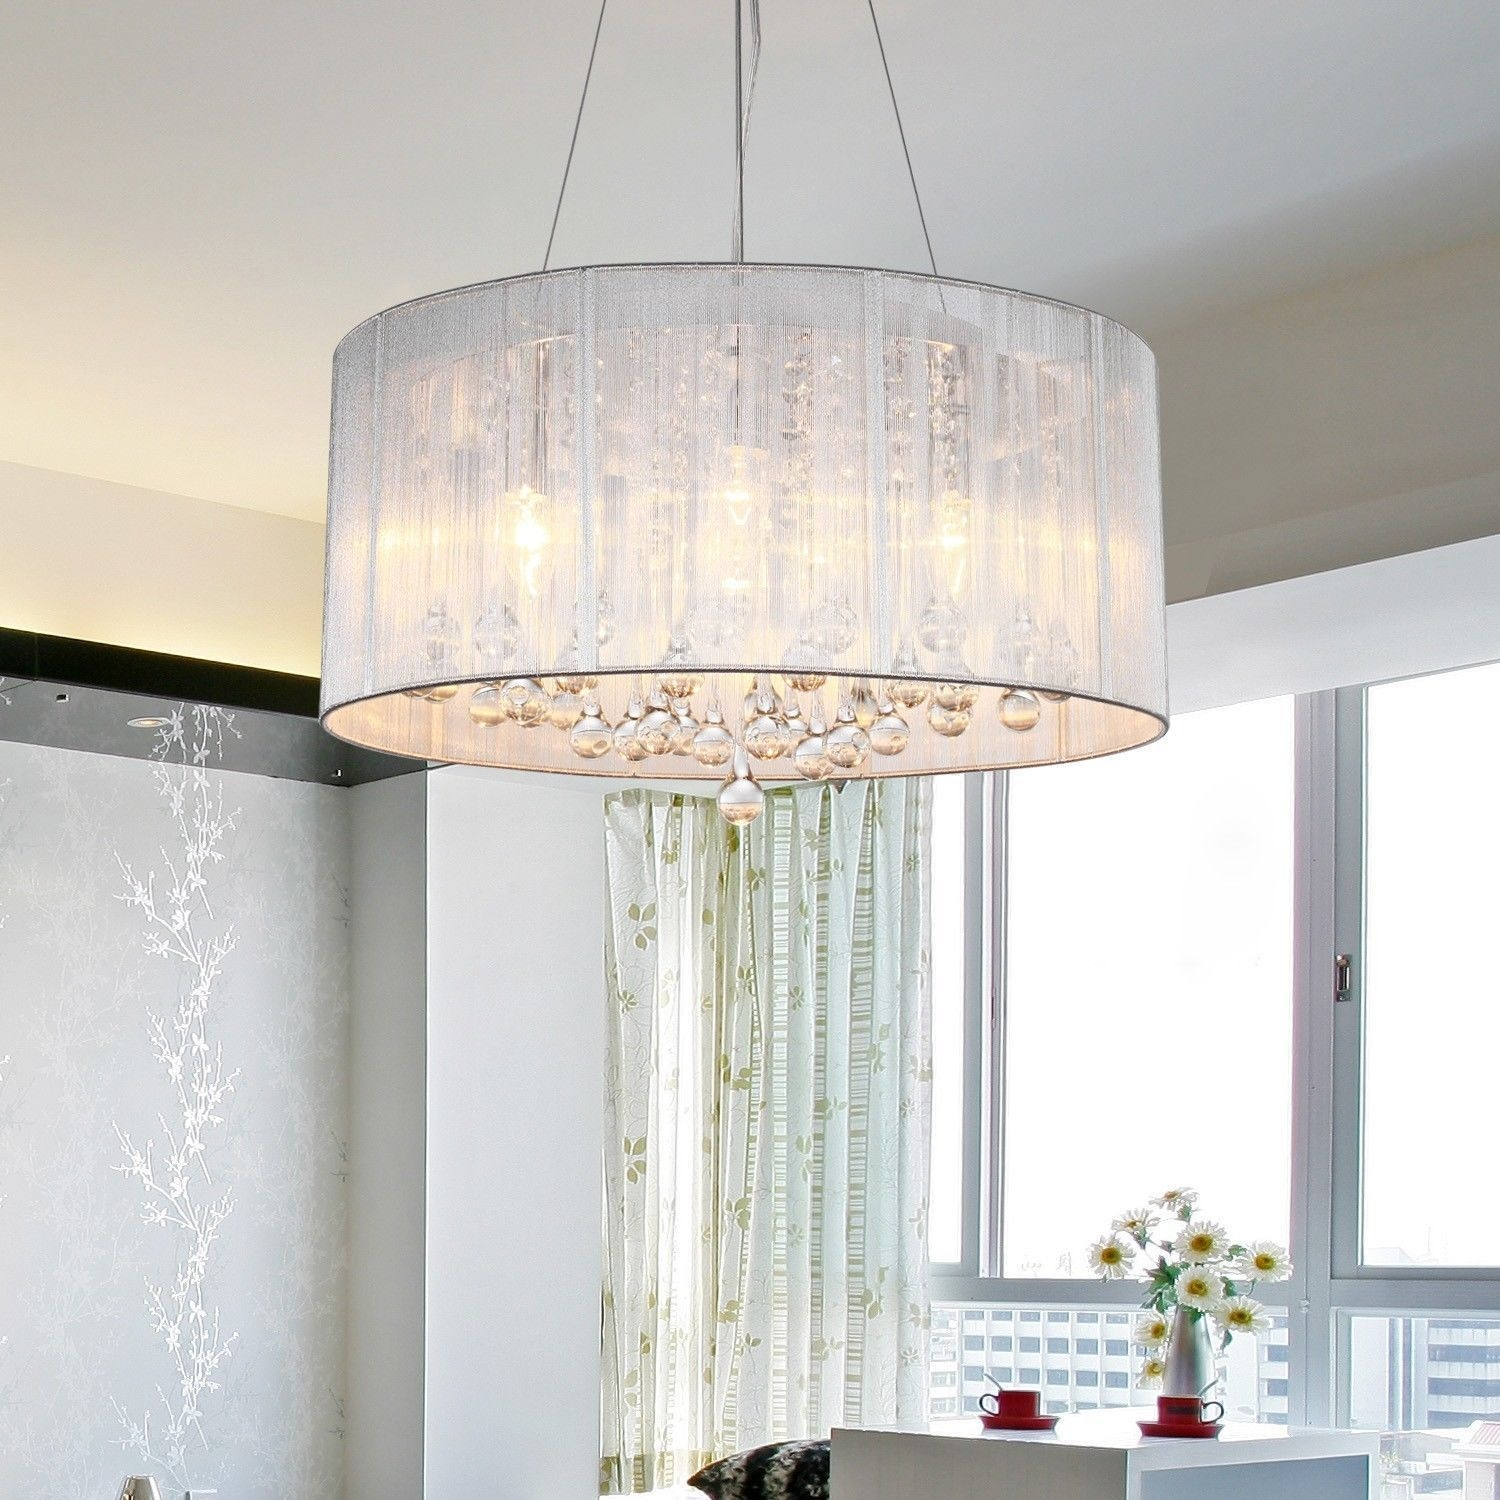 Perfect Chandelier Lamp Shades 40 Small Home Decor Inspiration Throughout Small Chandelier Lamp Shades (Image 17 of 25)